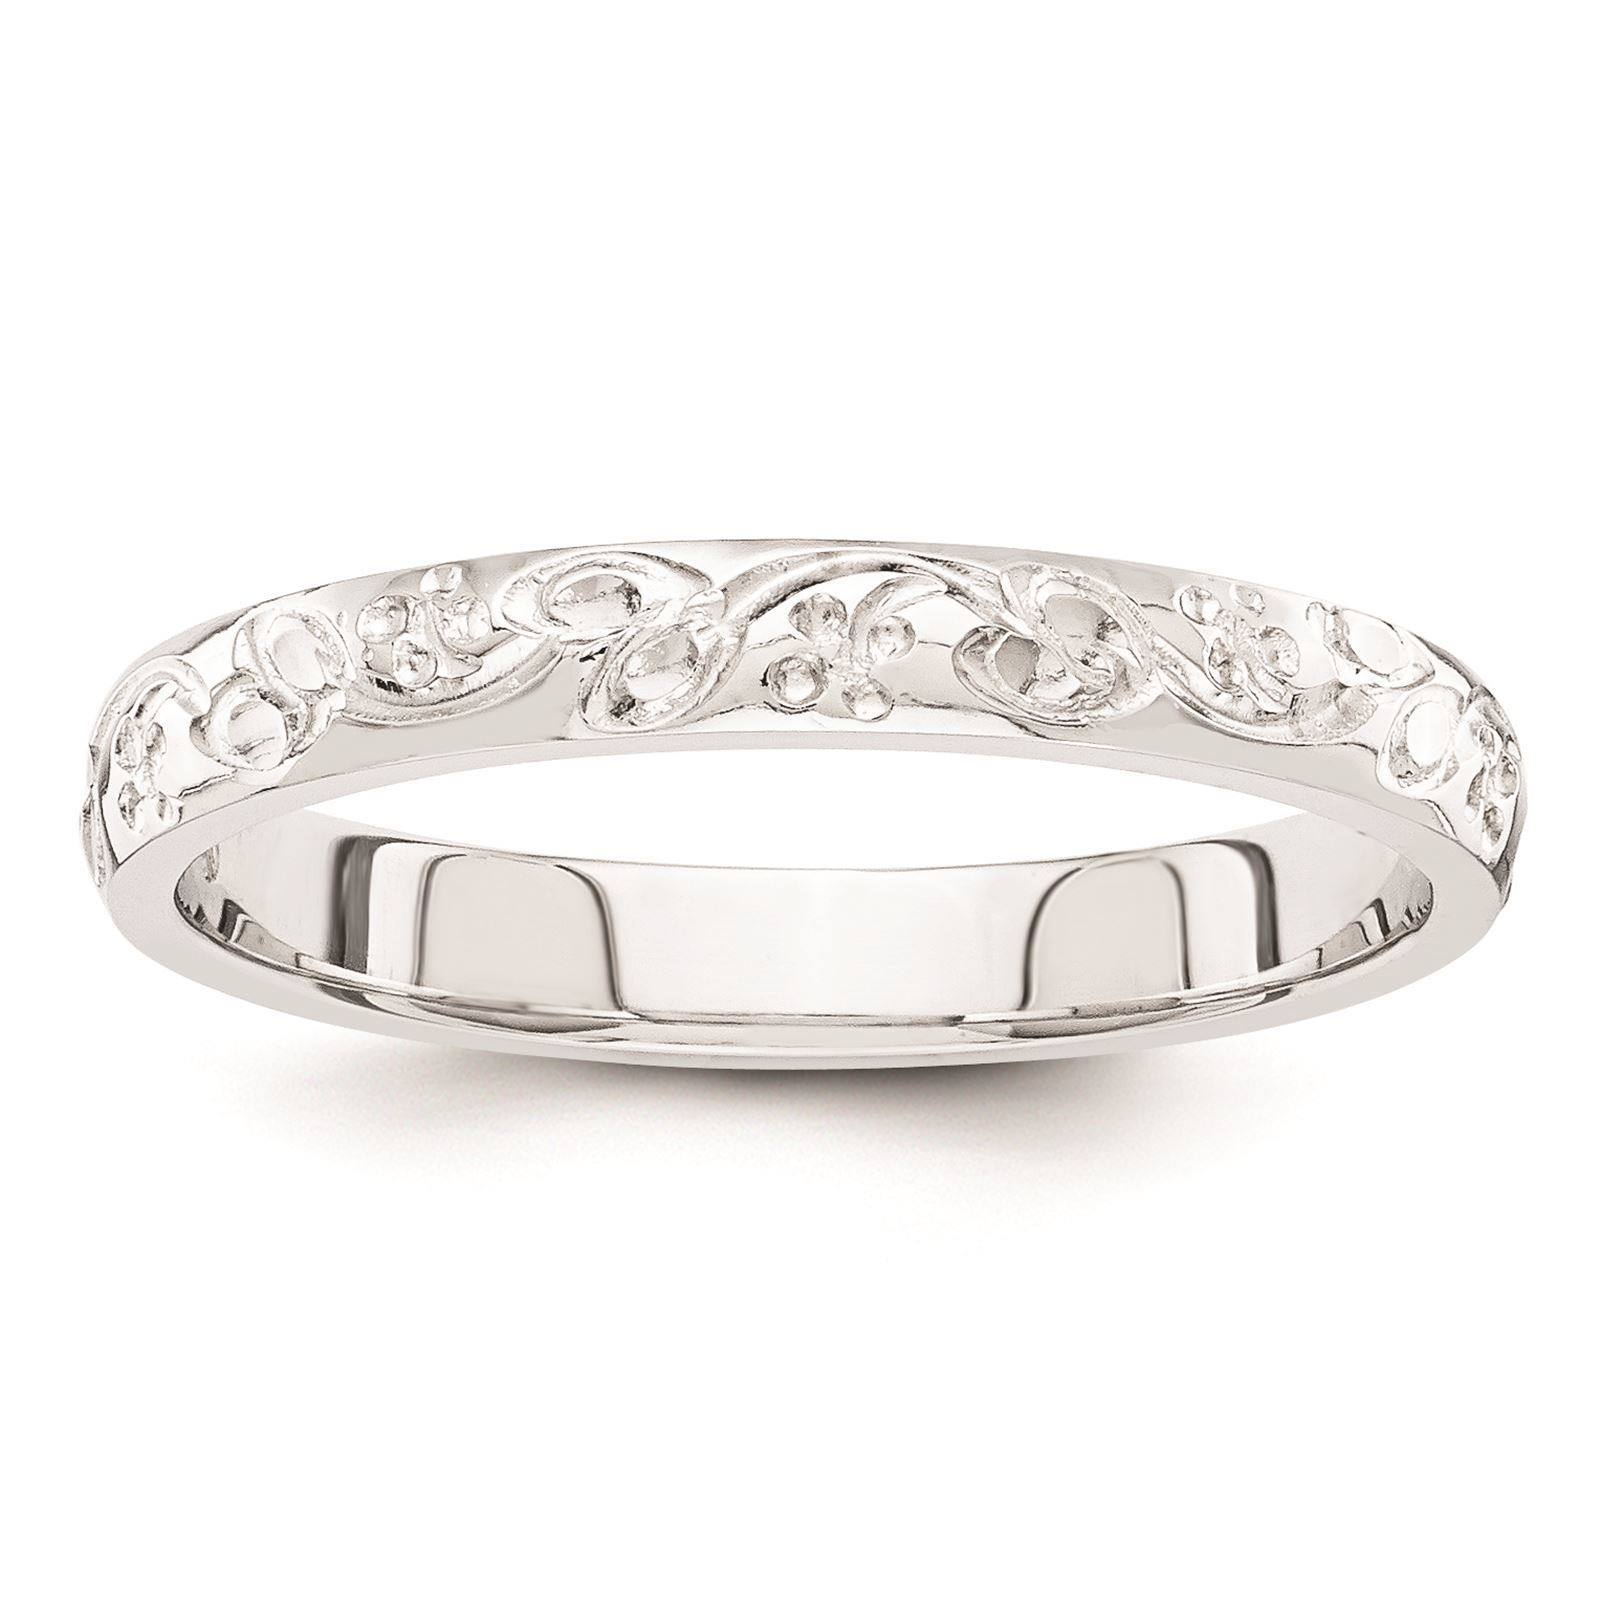 14K White Gold 3mm Polished Floral Etched Fancy Wedding Band Ring Size 8.5